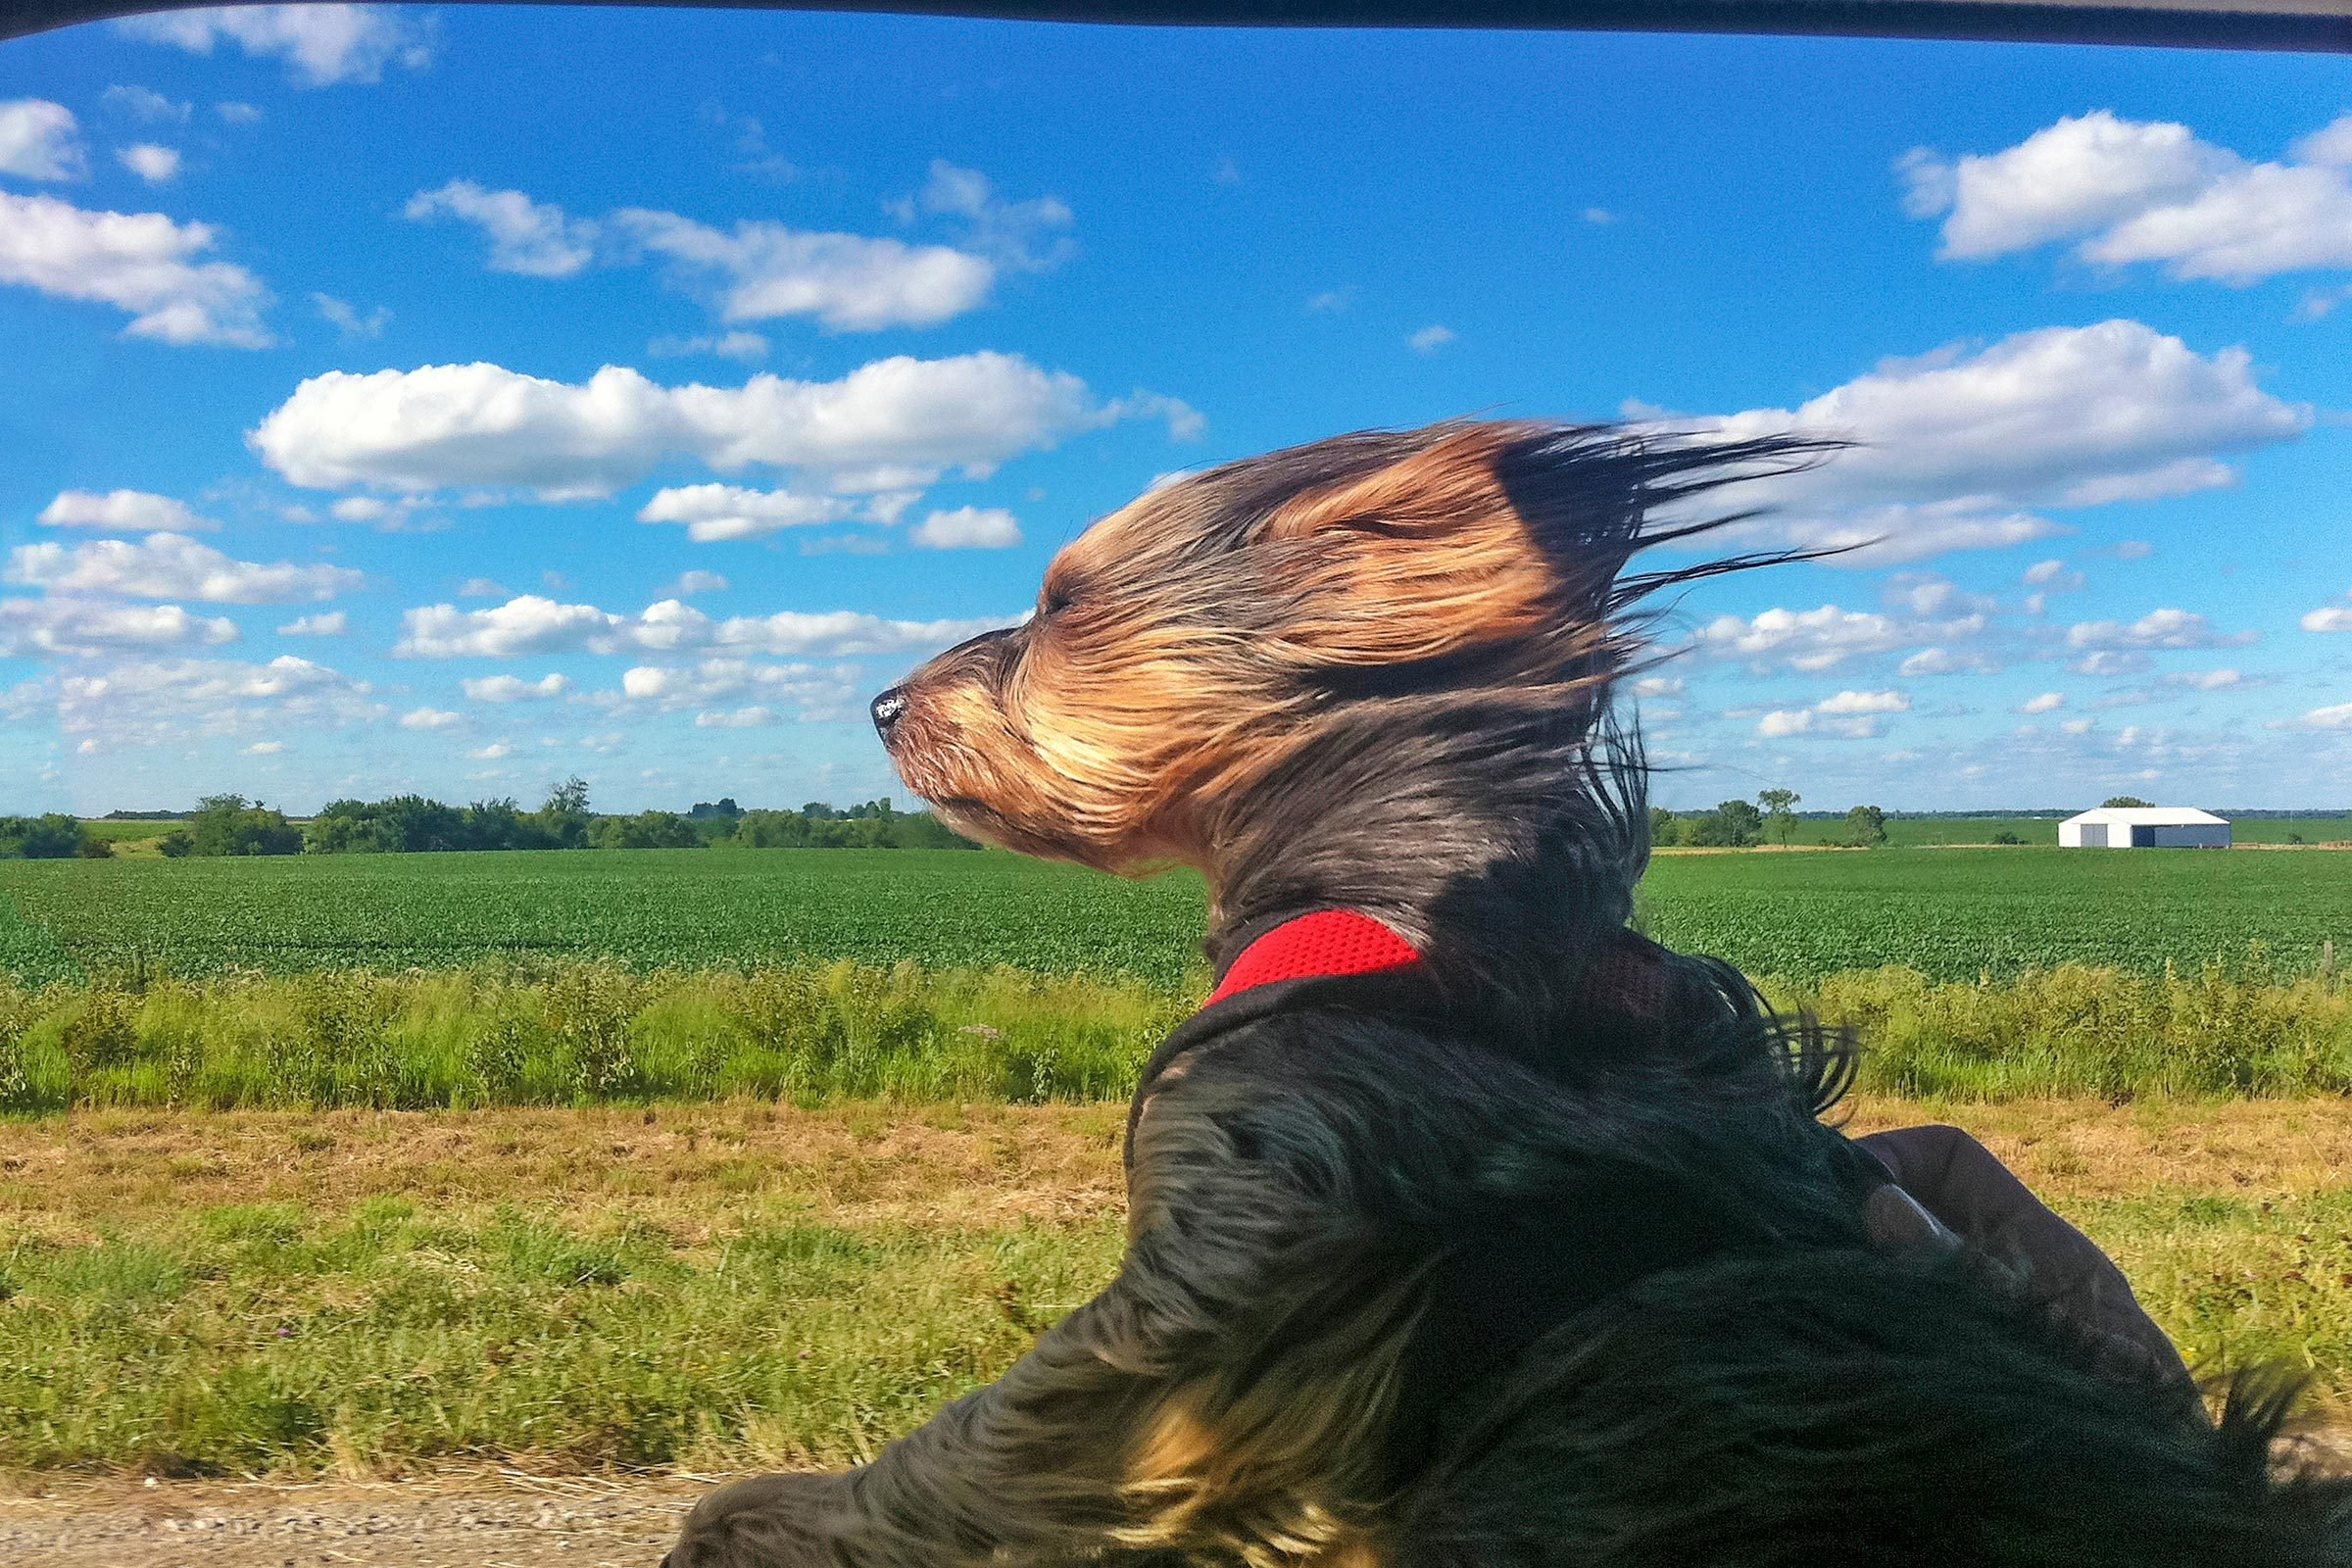 small dog with its head out the car window and hair blowing back on a sunny day near farmland